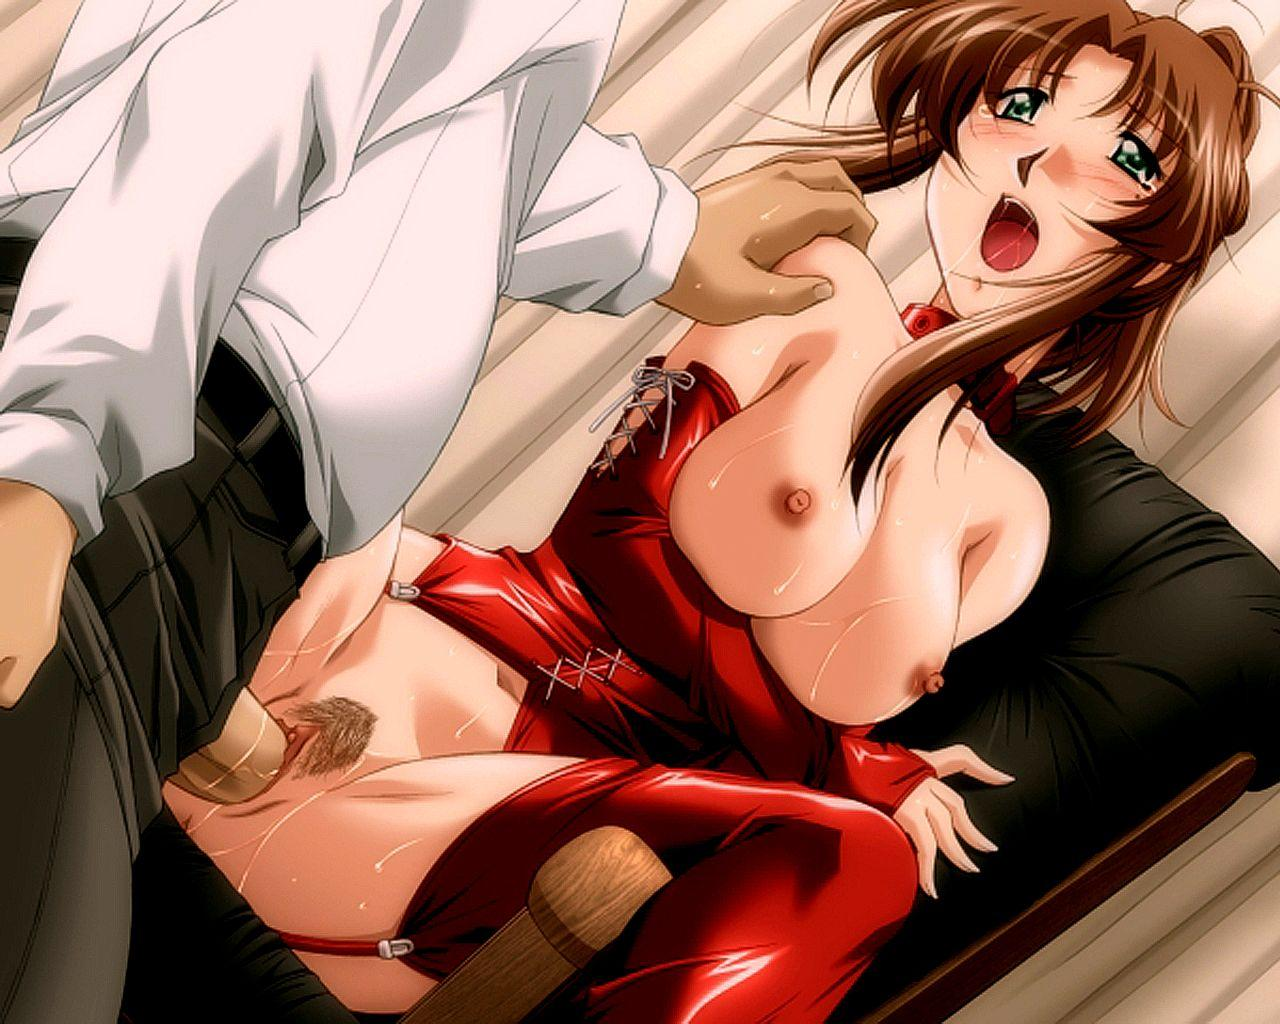 Sexy hentai girl warrier wallpaper sex video